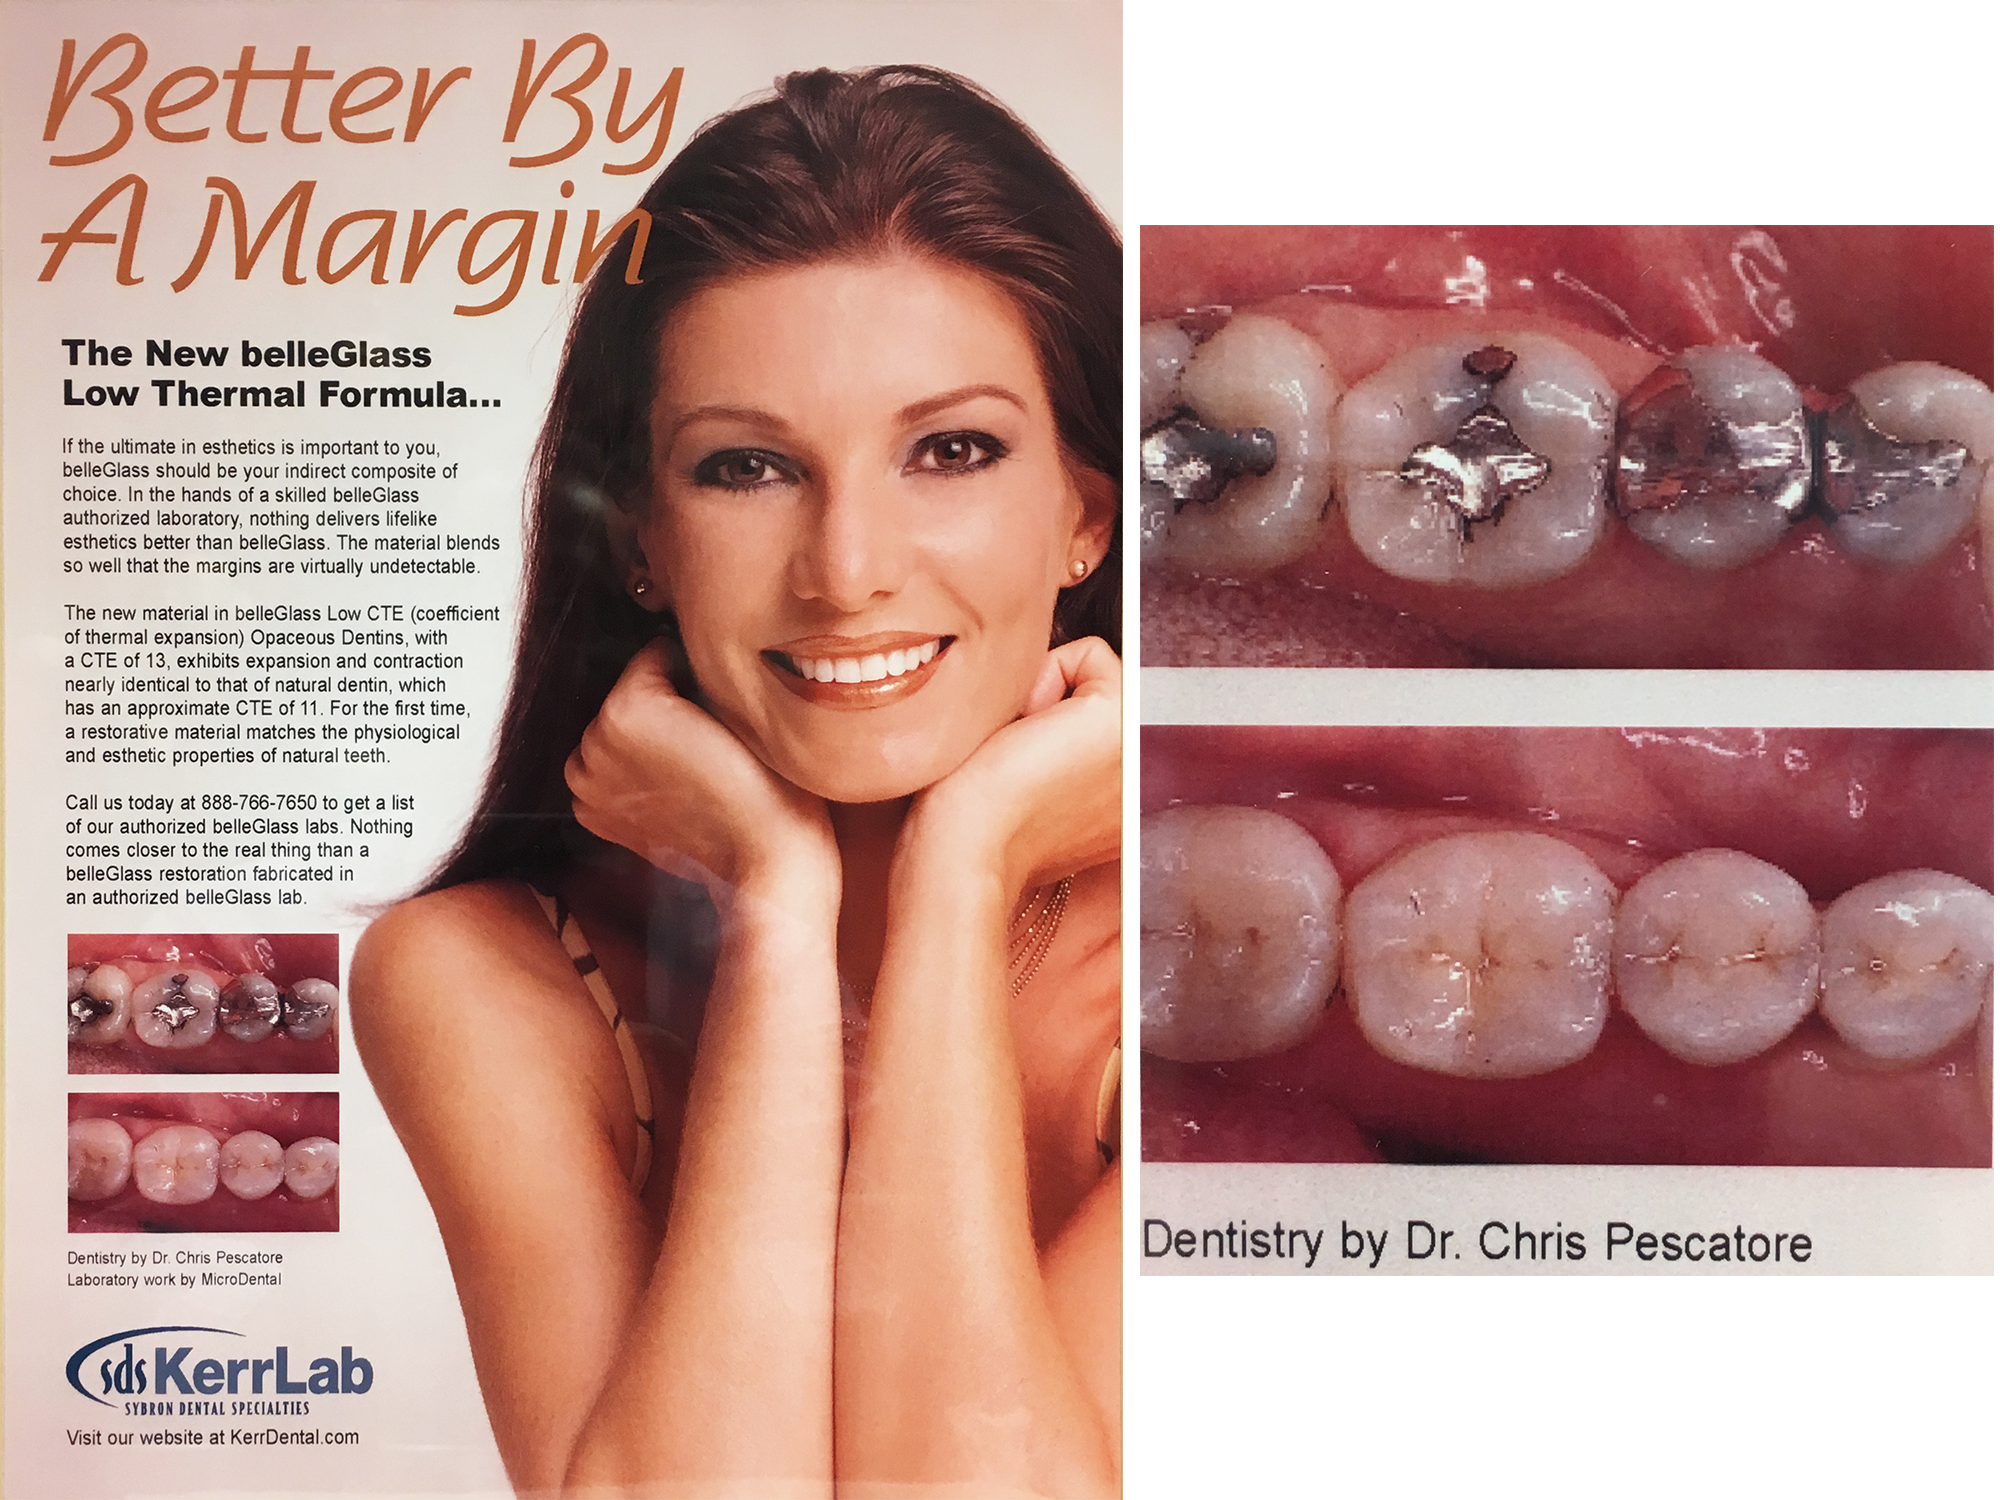 Dentistry By Dr. Christopher Pescatore Article